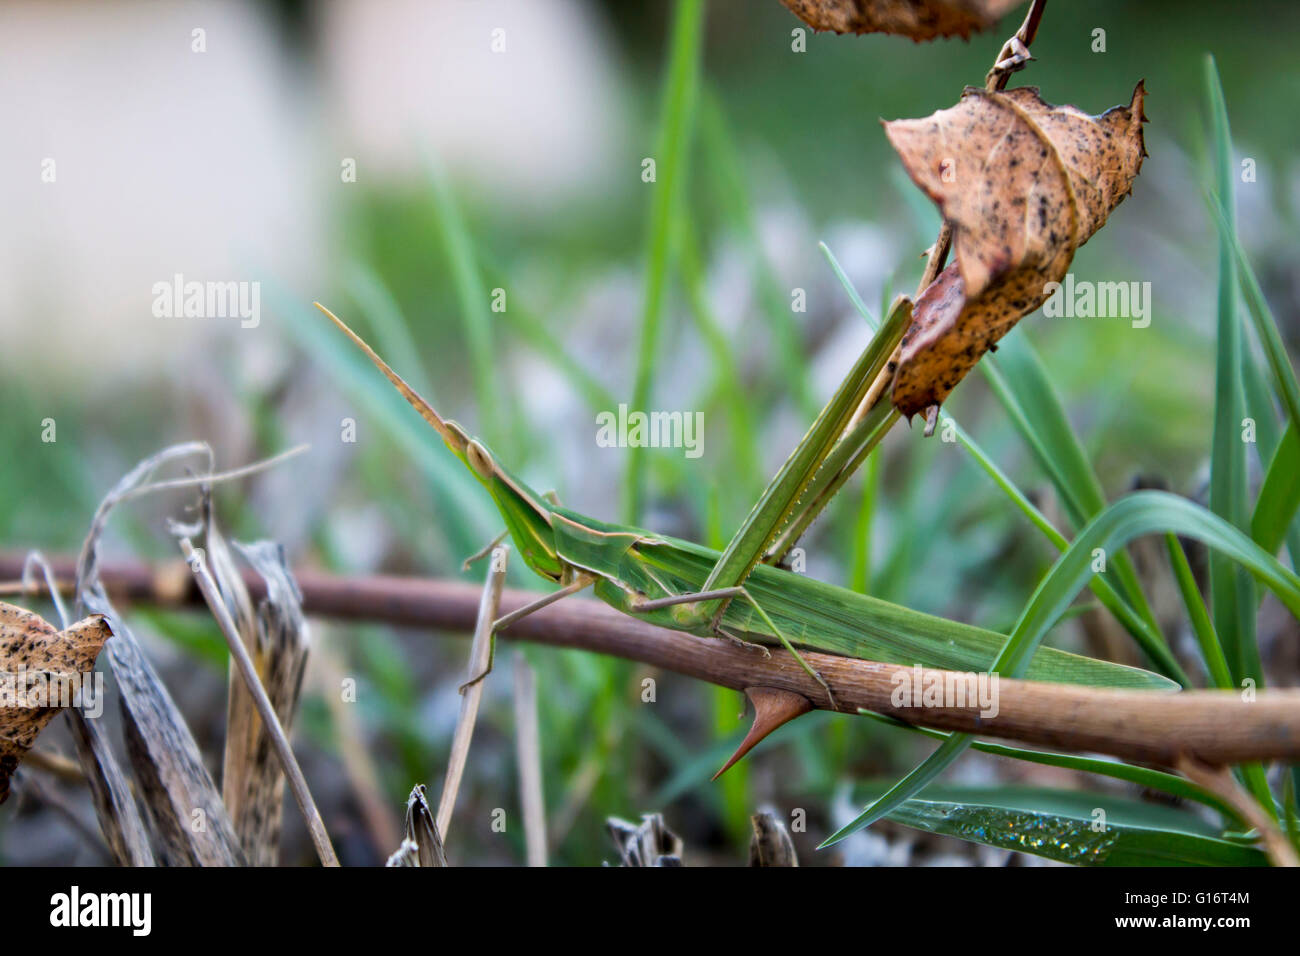 cricket that blends in with the environment - Stock Image